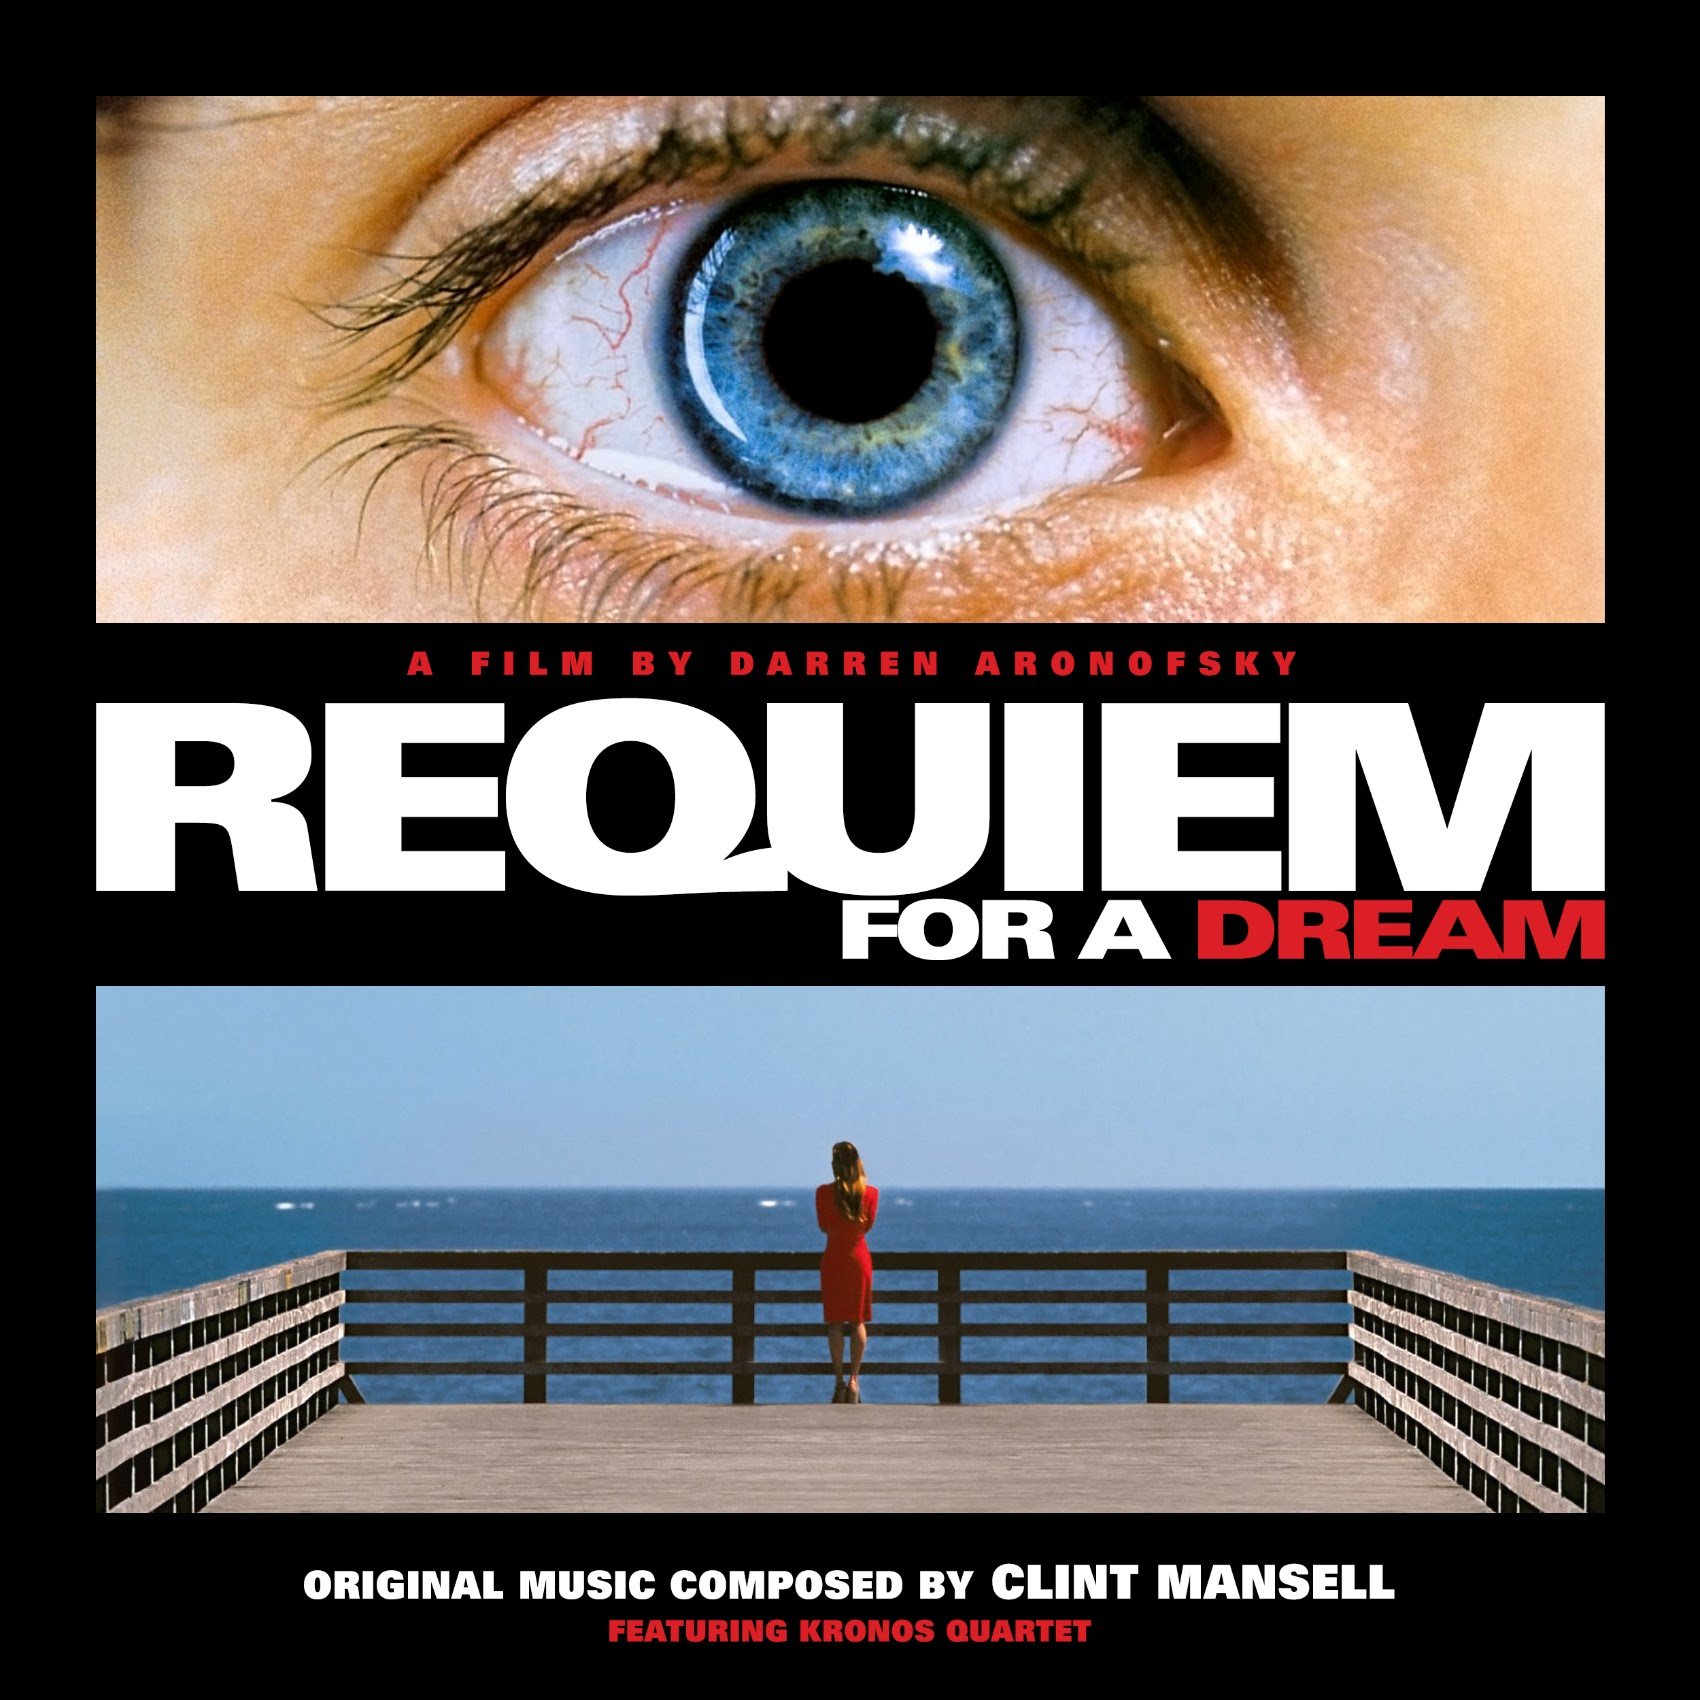 Album Artist: Clint Mansell featuring Kronos Quartet / Album Title: Requiem for a Dream (Original Music Composed by Clint Mansell featuring Kronos Quartet) [Custom Square Album Art]